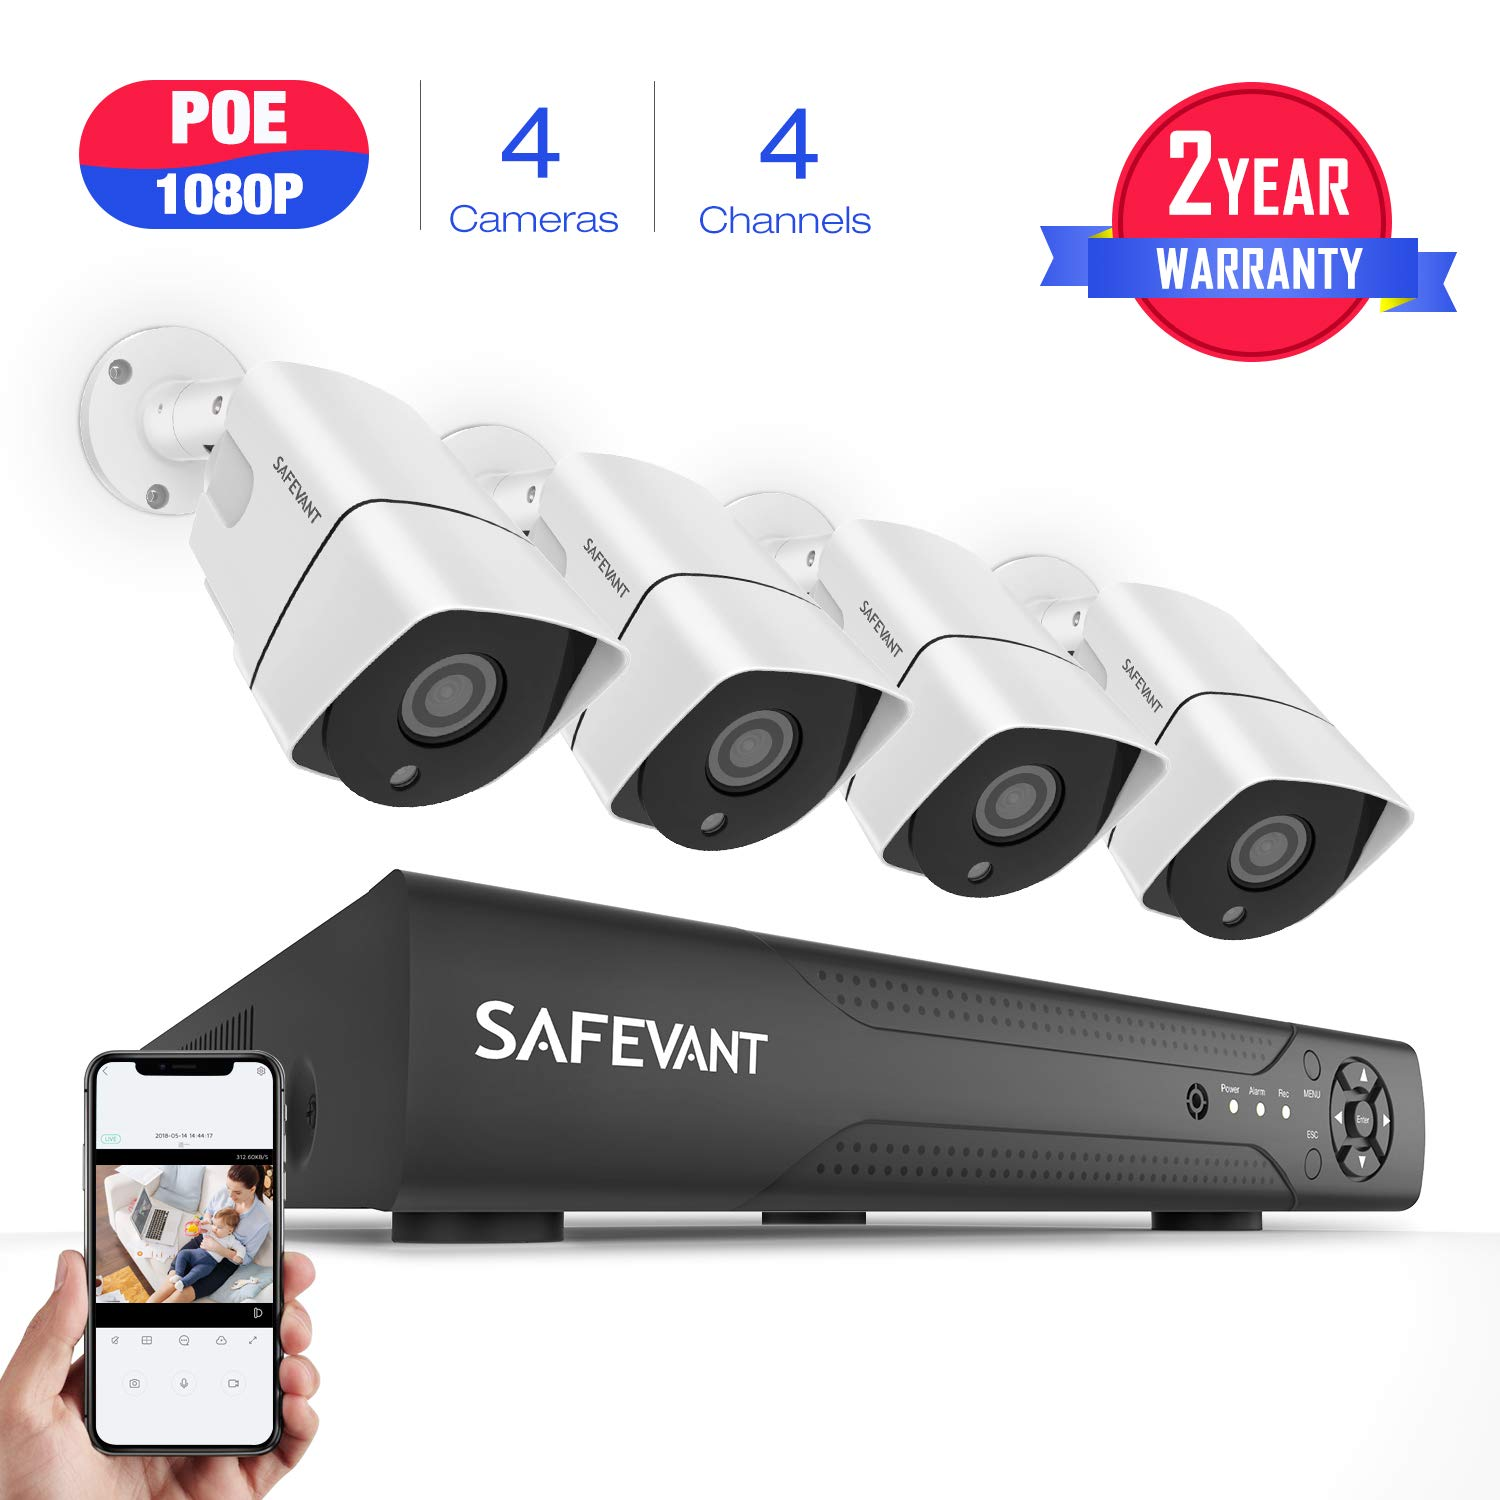 [2019 New] PoE Security Camera System,SAFEVANT 1080P Home Security Camera System w/ 4 Wired 1080P Outdoor PoE IP Cameras, 4 Channel PoE NVR Security Camera System,NO Hard Drive